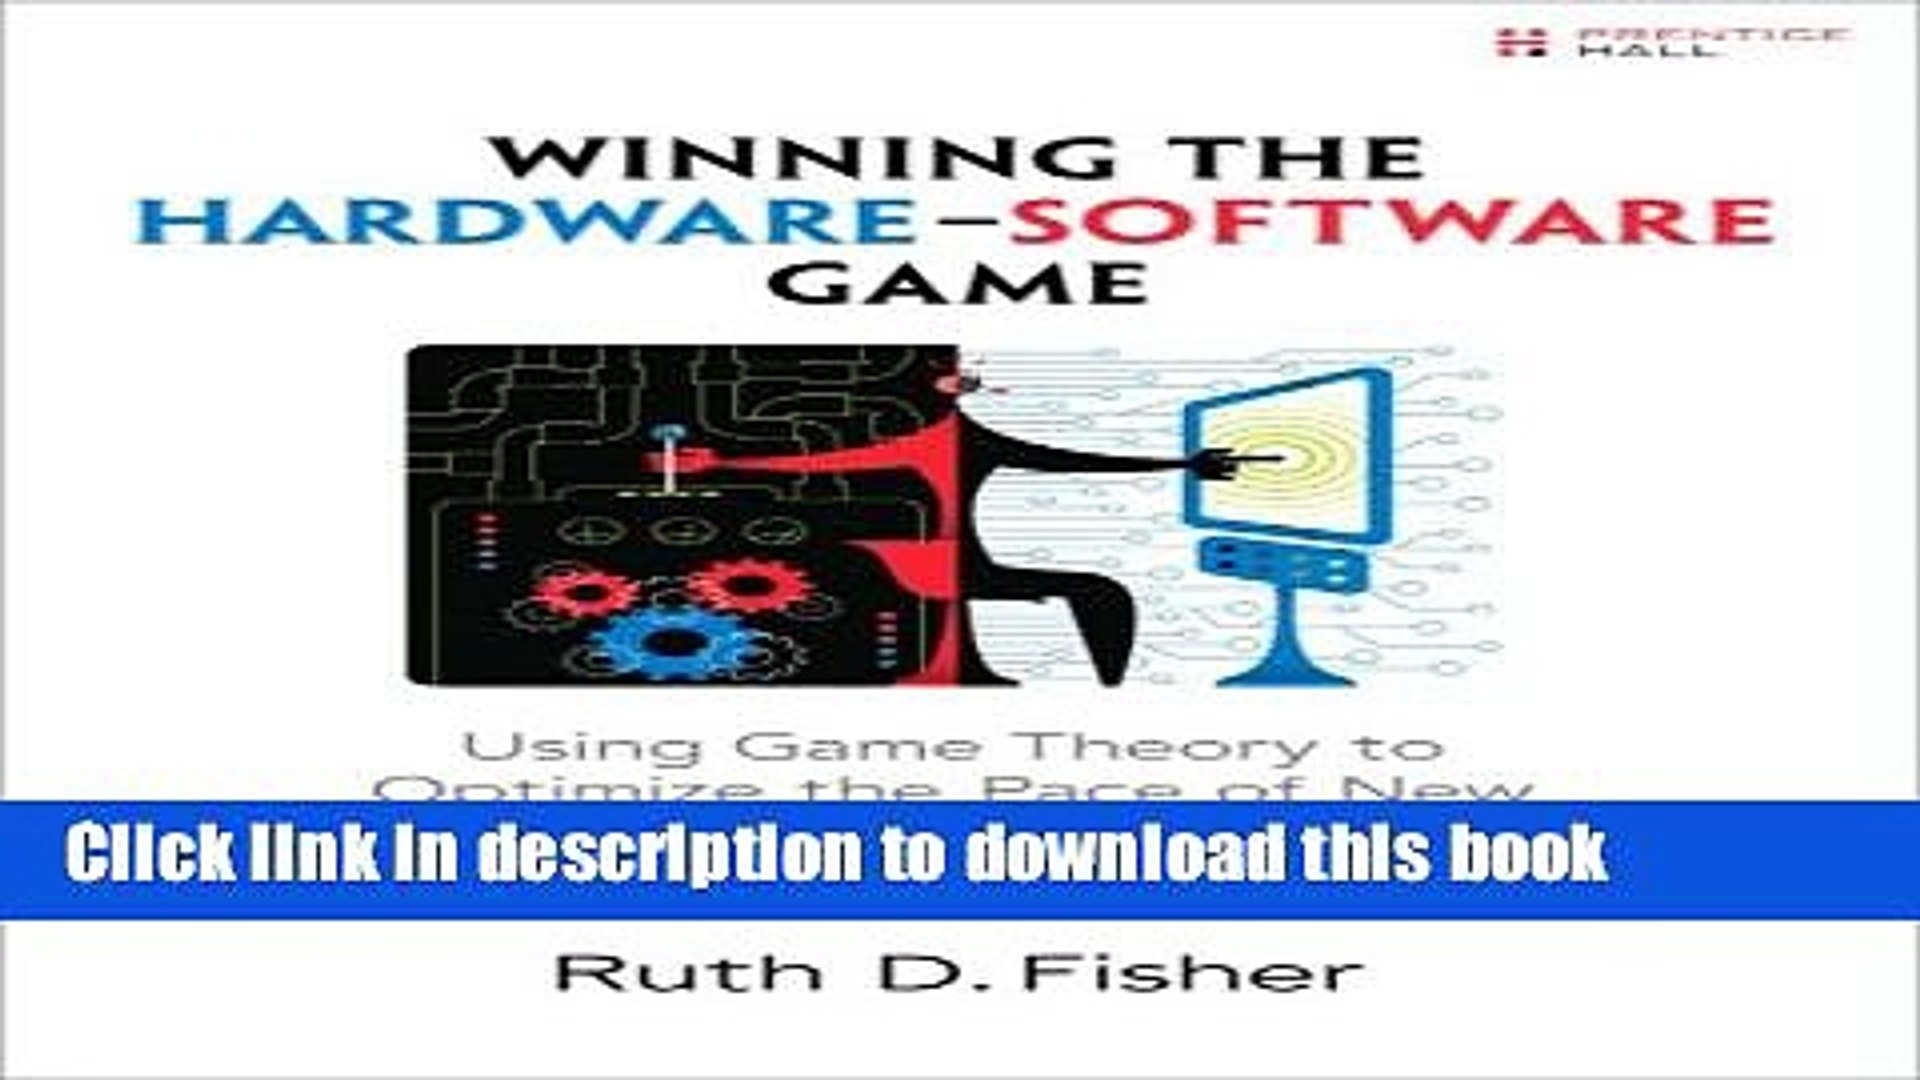 Read Winning the Hardware-Software Game: Using Game Theory to Optimize the Pace of New Technology